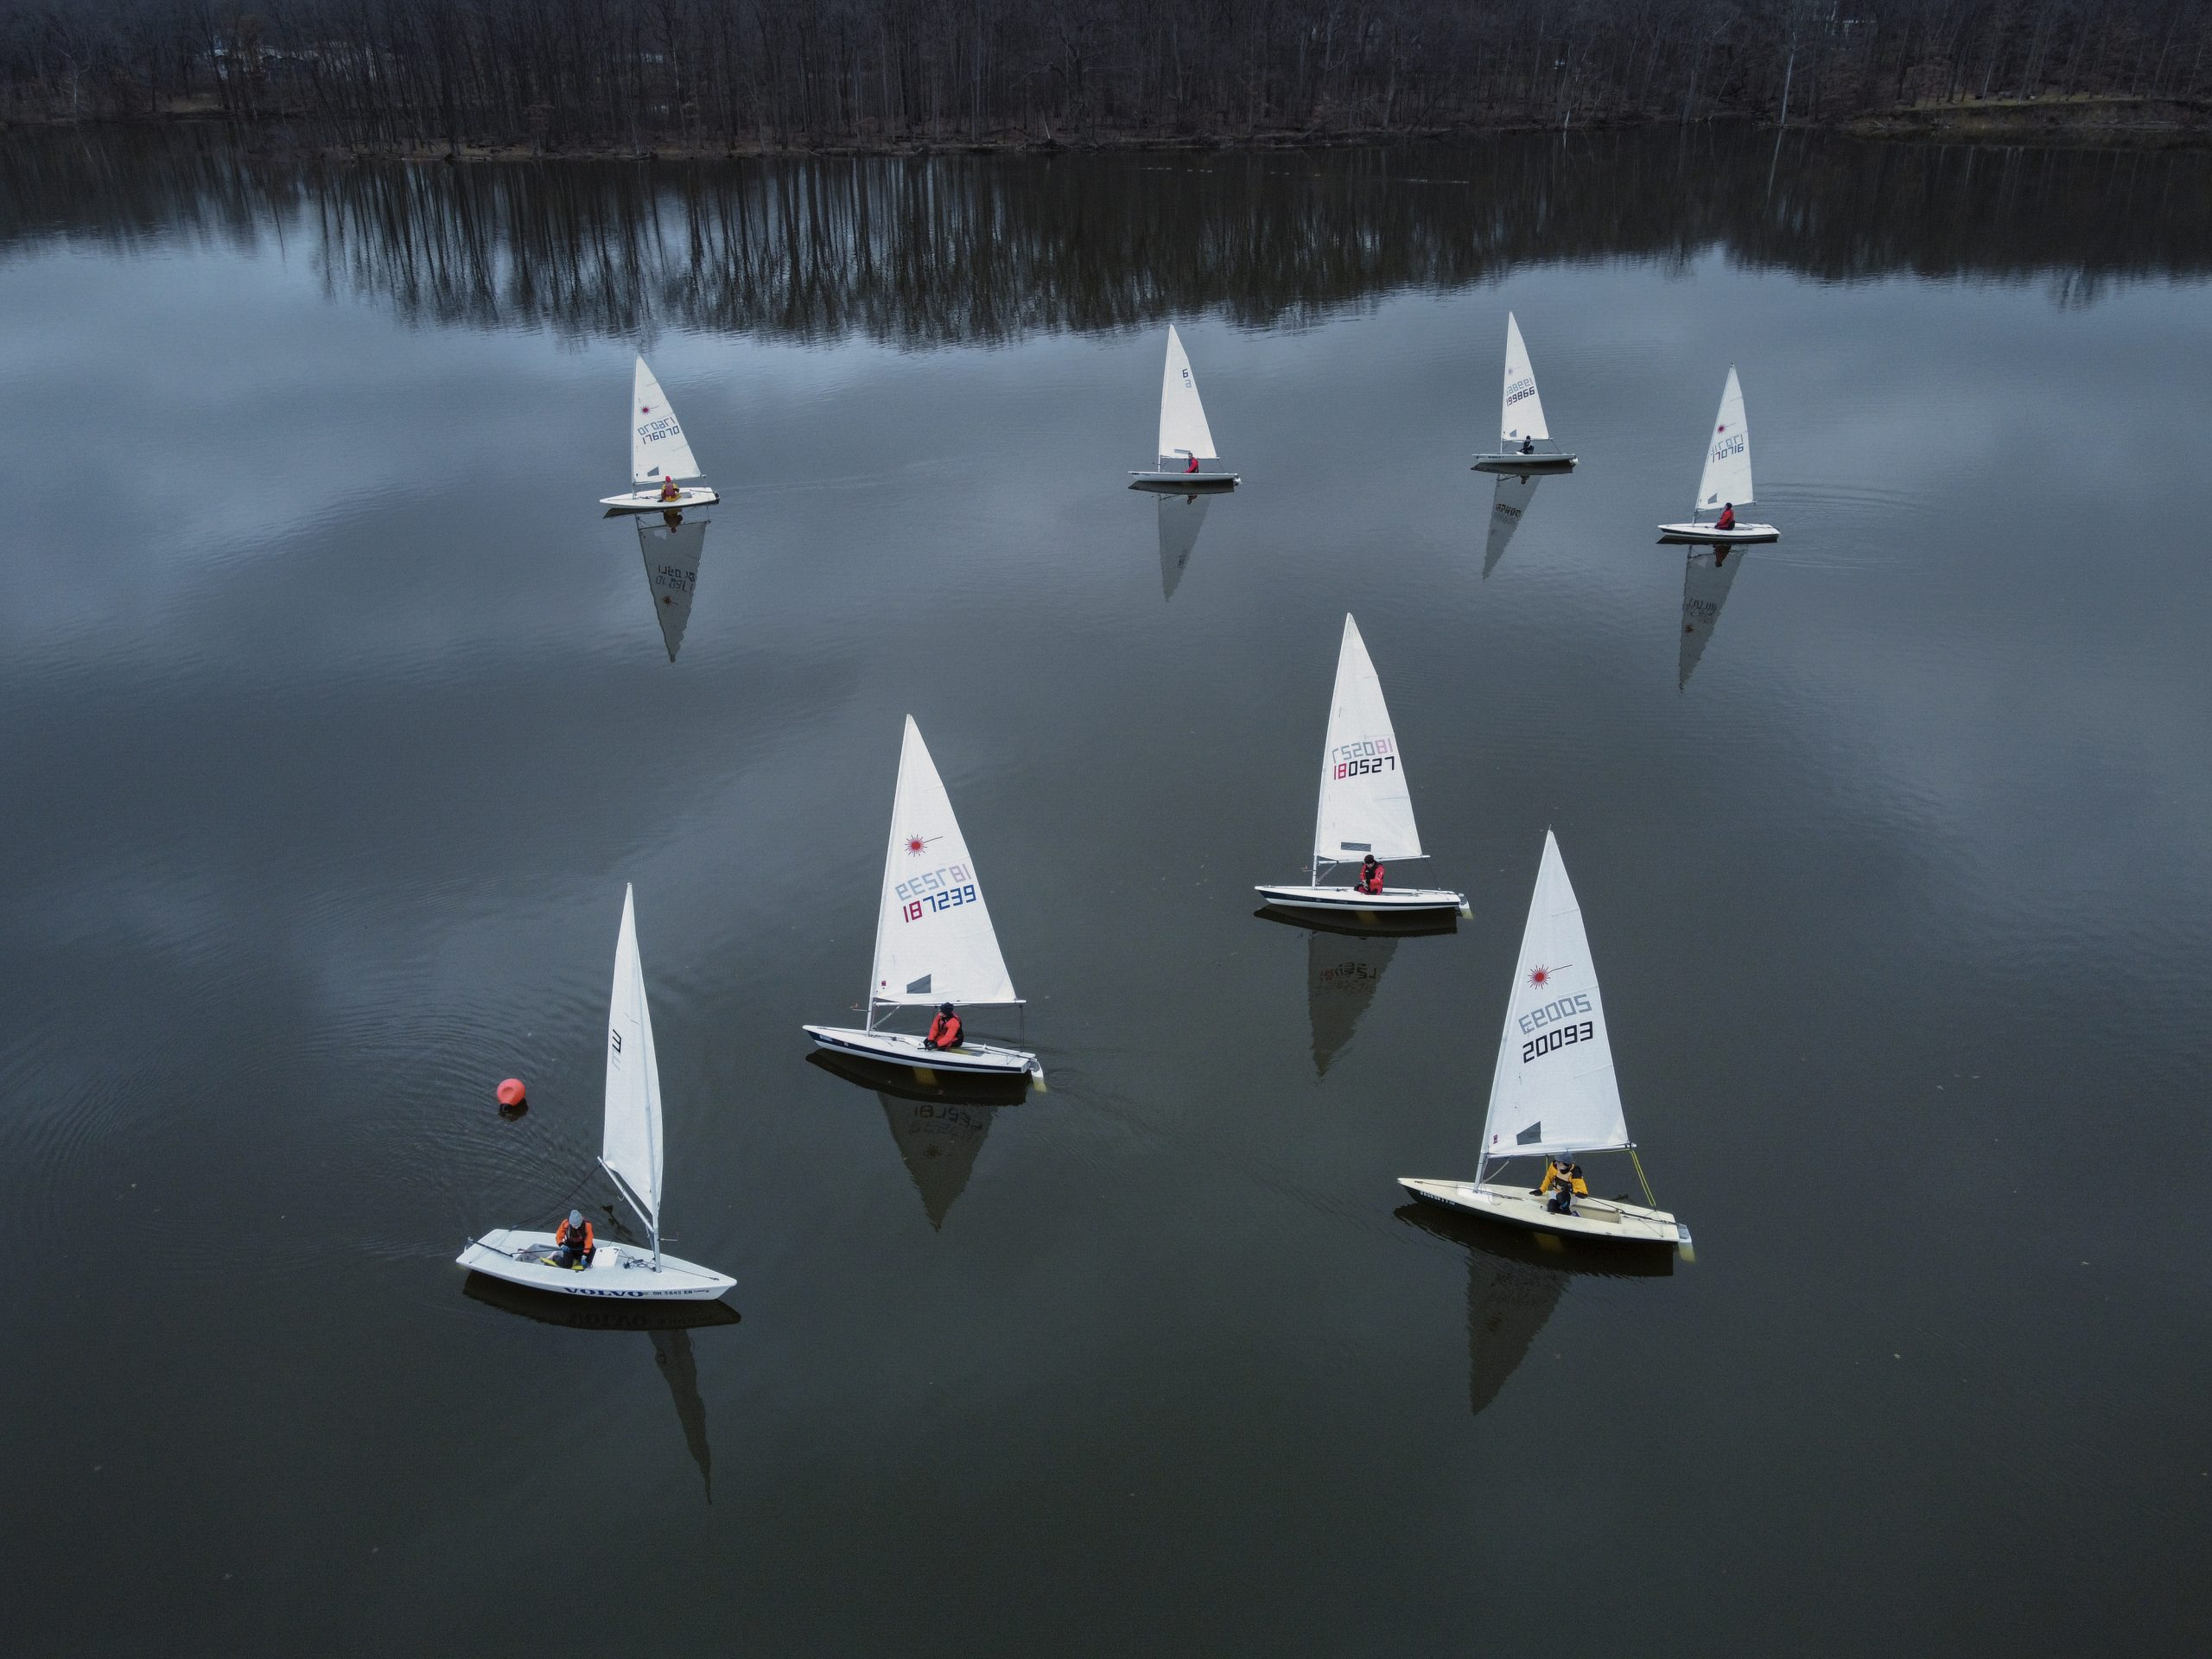 Sailors from the Hoover Sailing Club slowly navigate their way around buoys marking the racecourse where they competed on a day with little wind but still waters. My Final Photo for Jan 2, 2021.